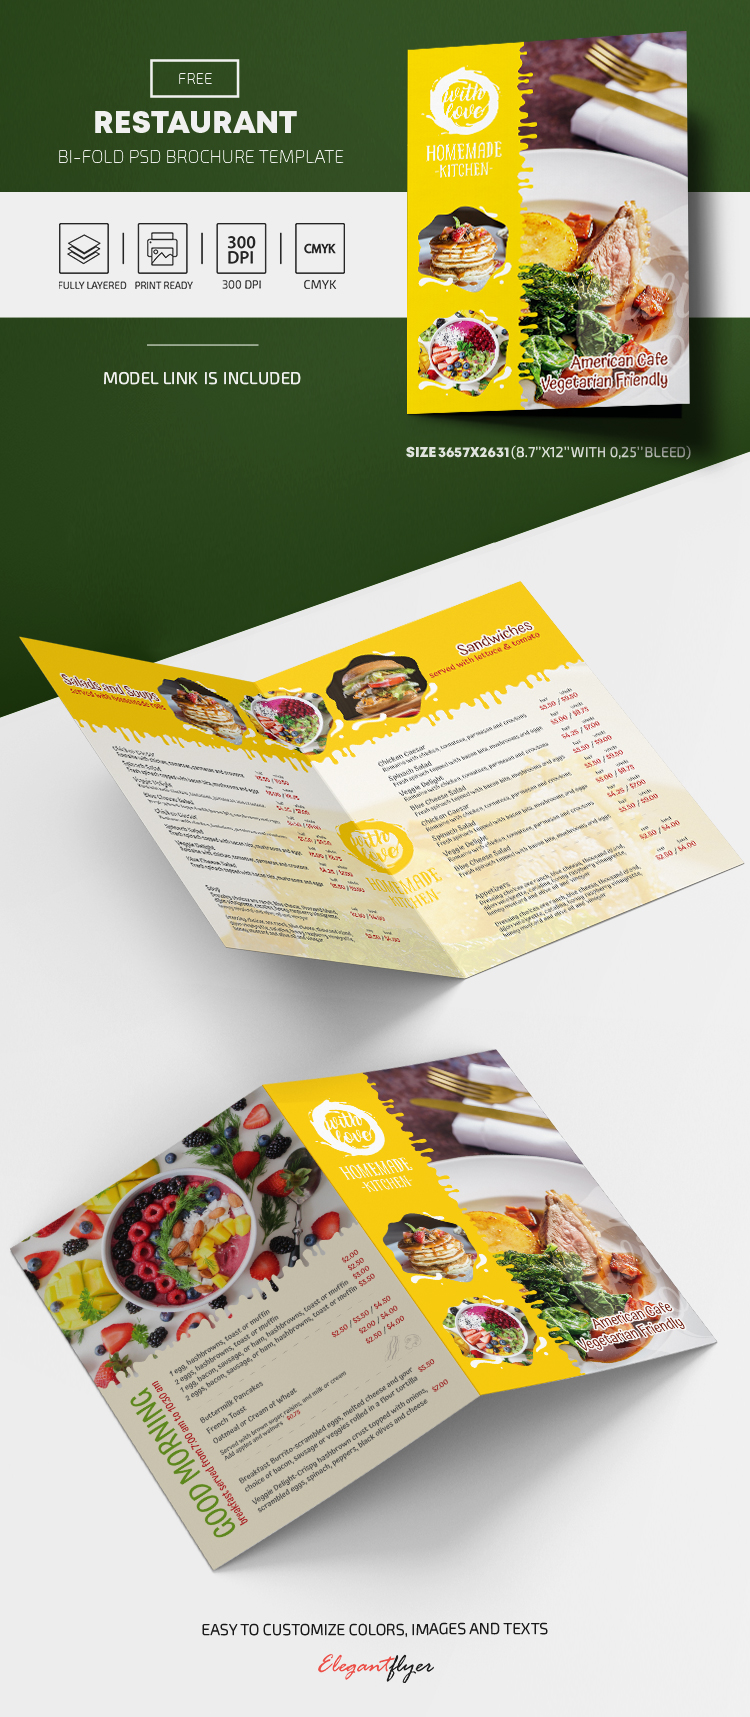 Free Restaurant Menu Template in PSD